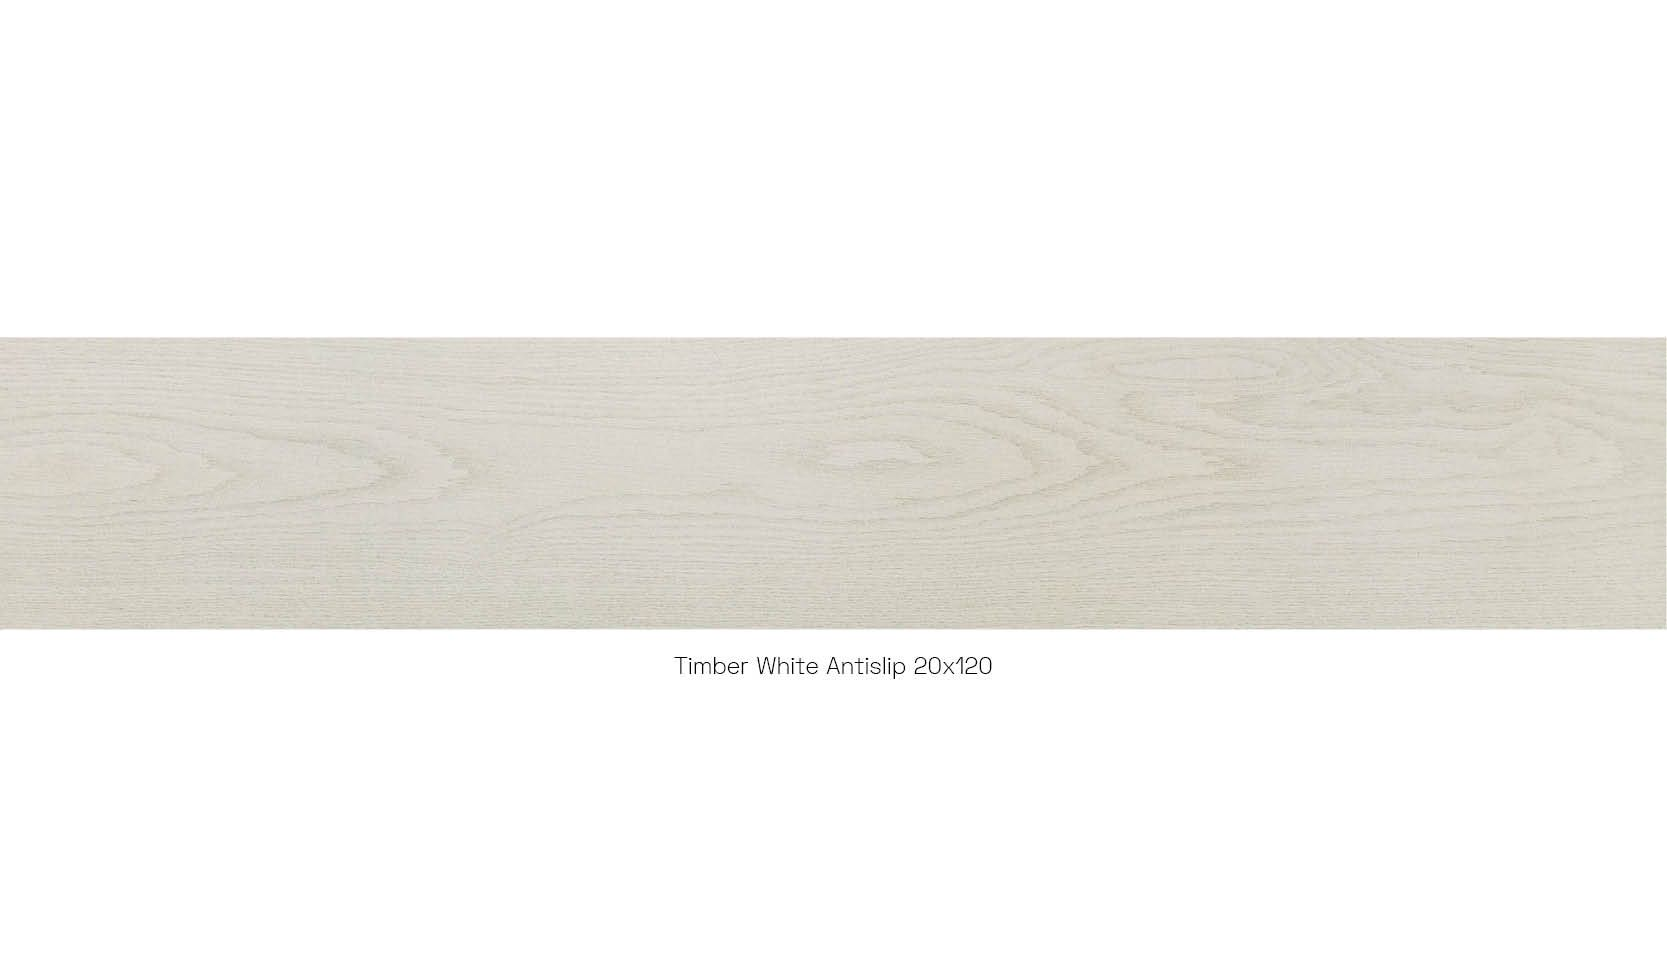 Timber white antislip 20 x 120